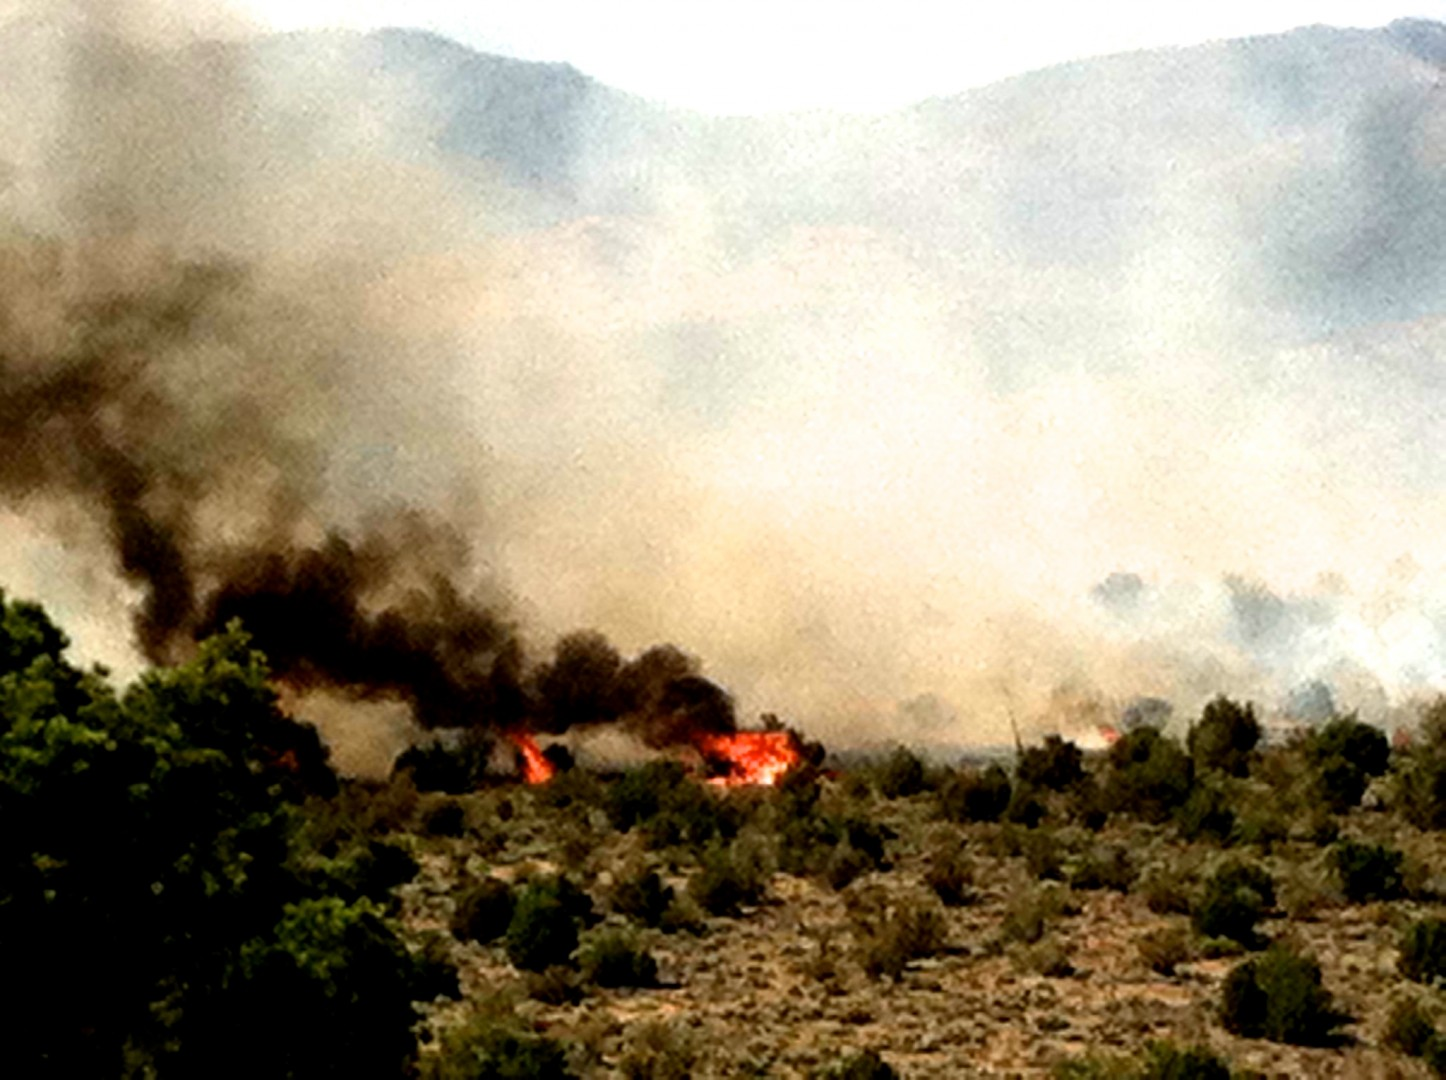 Smoke fills the air from a wildfire just west of Highway 18, Brookside, Utah, July 25, 2013 | Photo courtesy of Janie McDade Hawley, St. George News